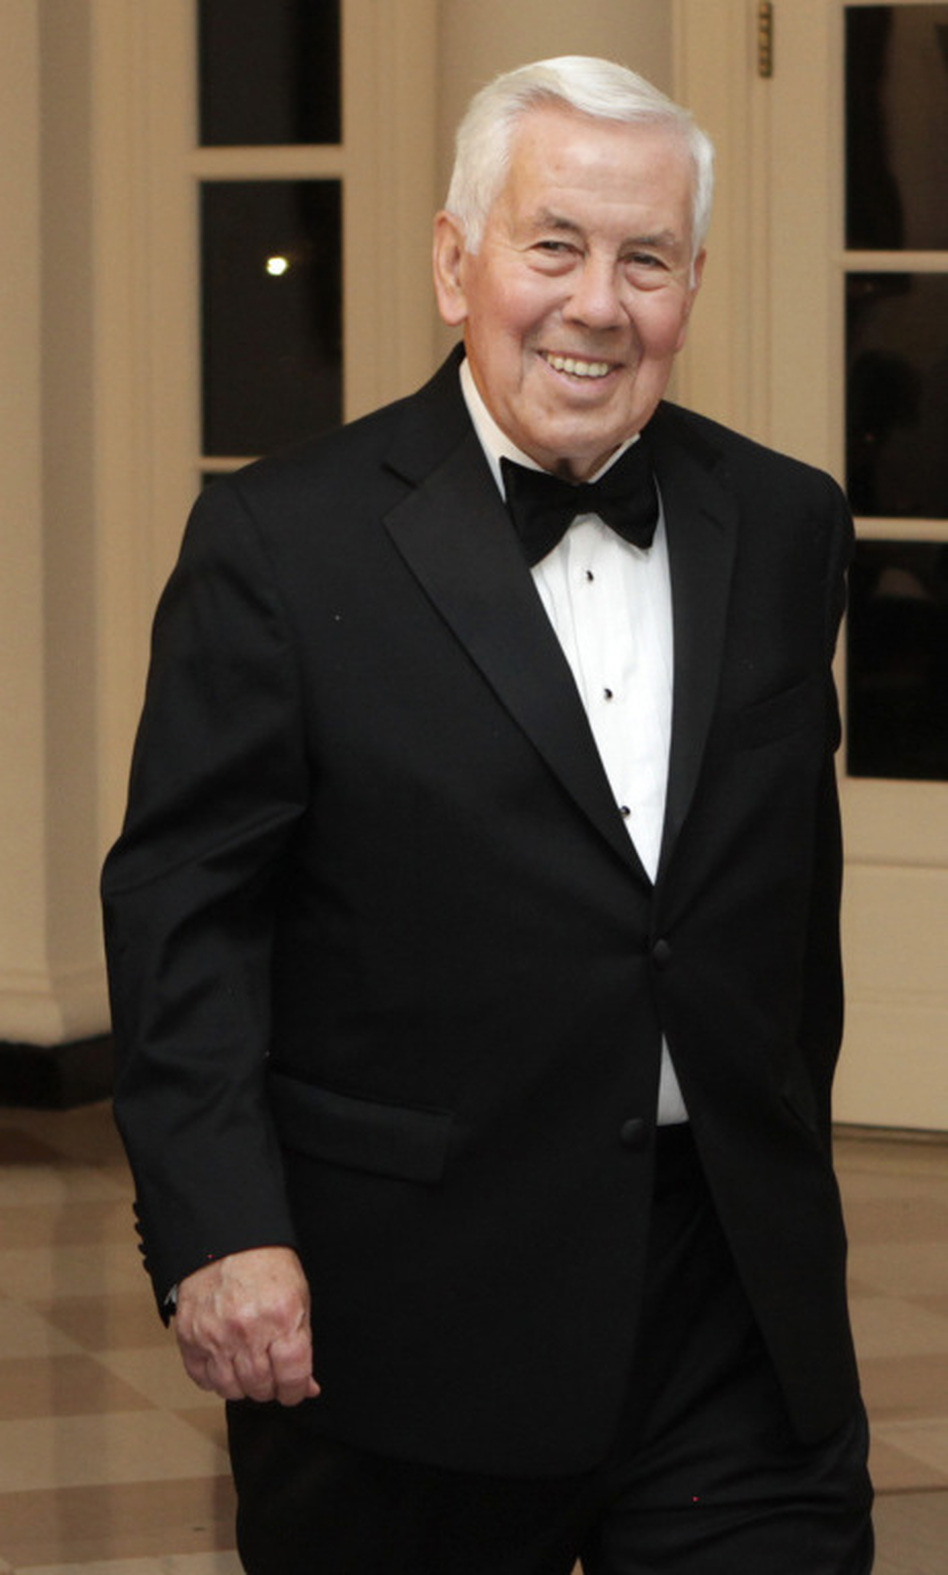 Sen. Richard Lugar, R-Ind., attends a state dinner at the White House on Oct. 13, 2011.